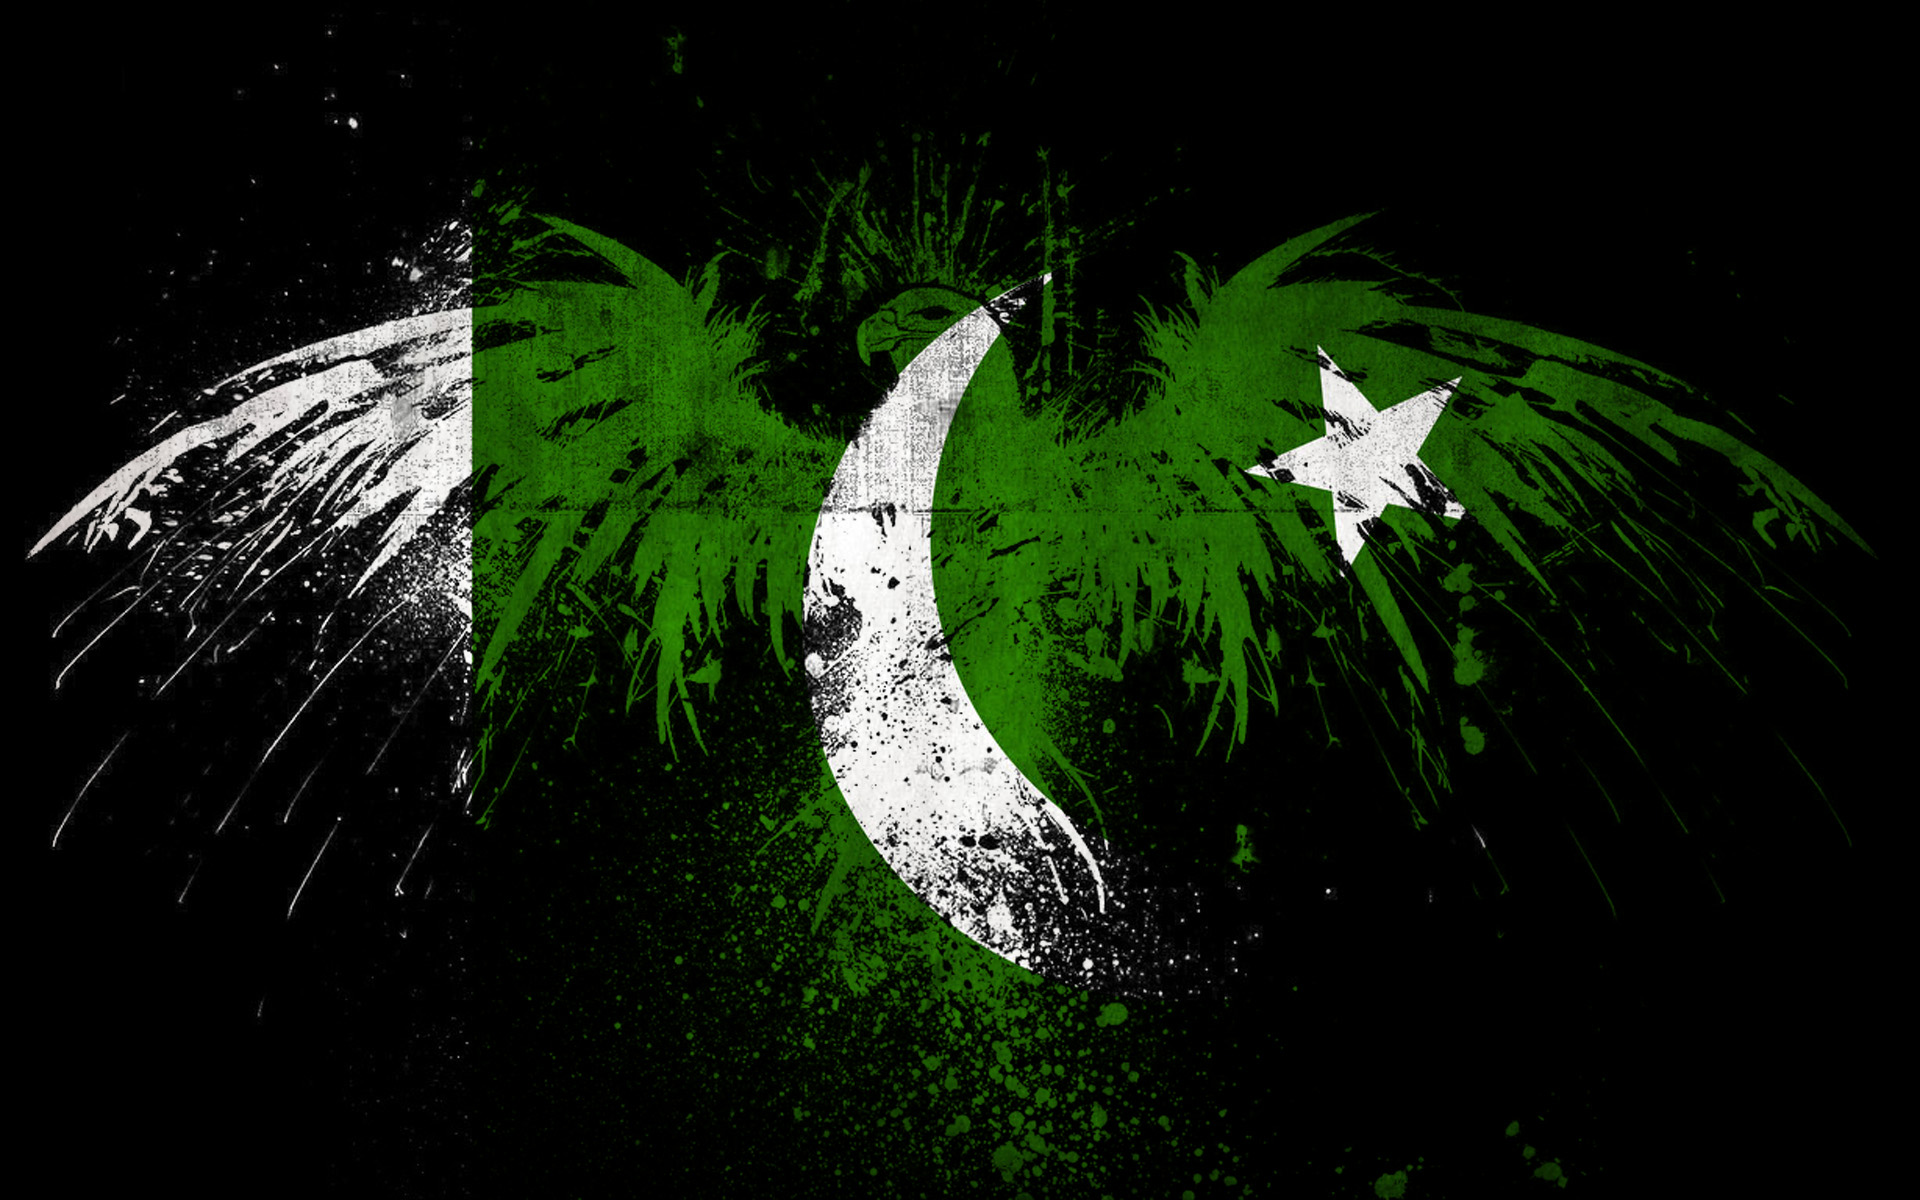 Download Pakistan Wallpapers With Complete Pakistani Culture 1920x1200